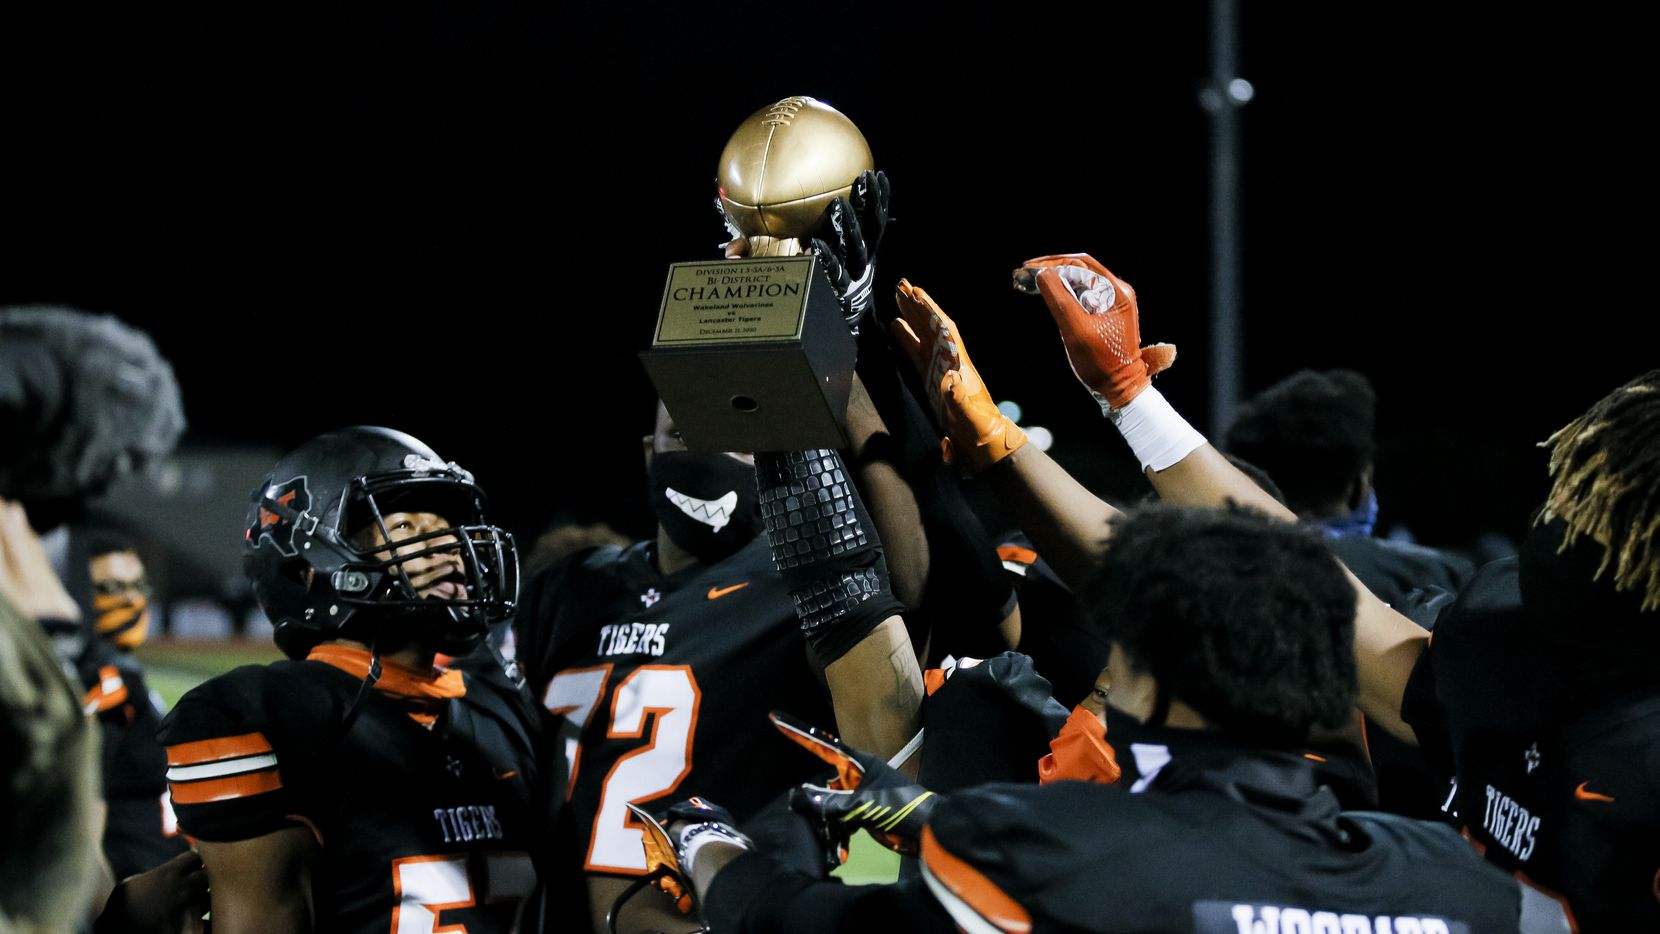 Lancaster celebrates a 29-6 win over Wakeland in a class 5A Division I bi-district round playoff game at Tiger Stadium in Lancaster, Friday, December 11, 2020. (Brandon Wade/Special Contributor)